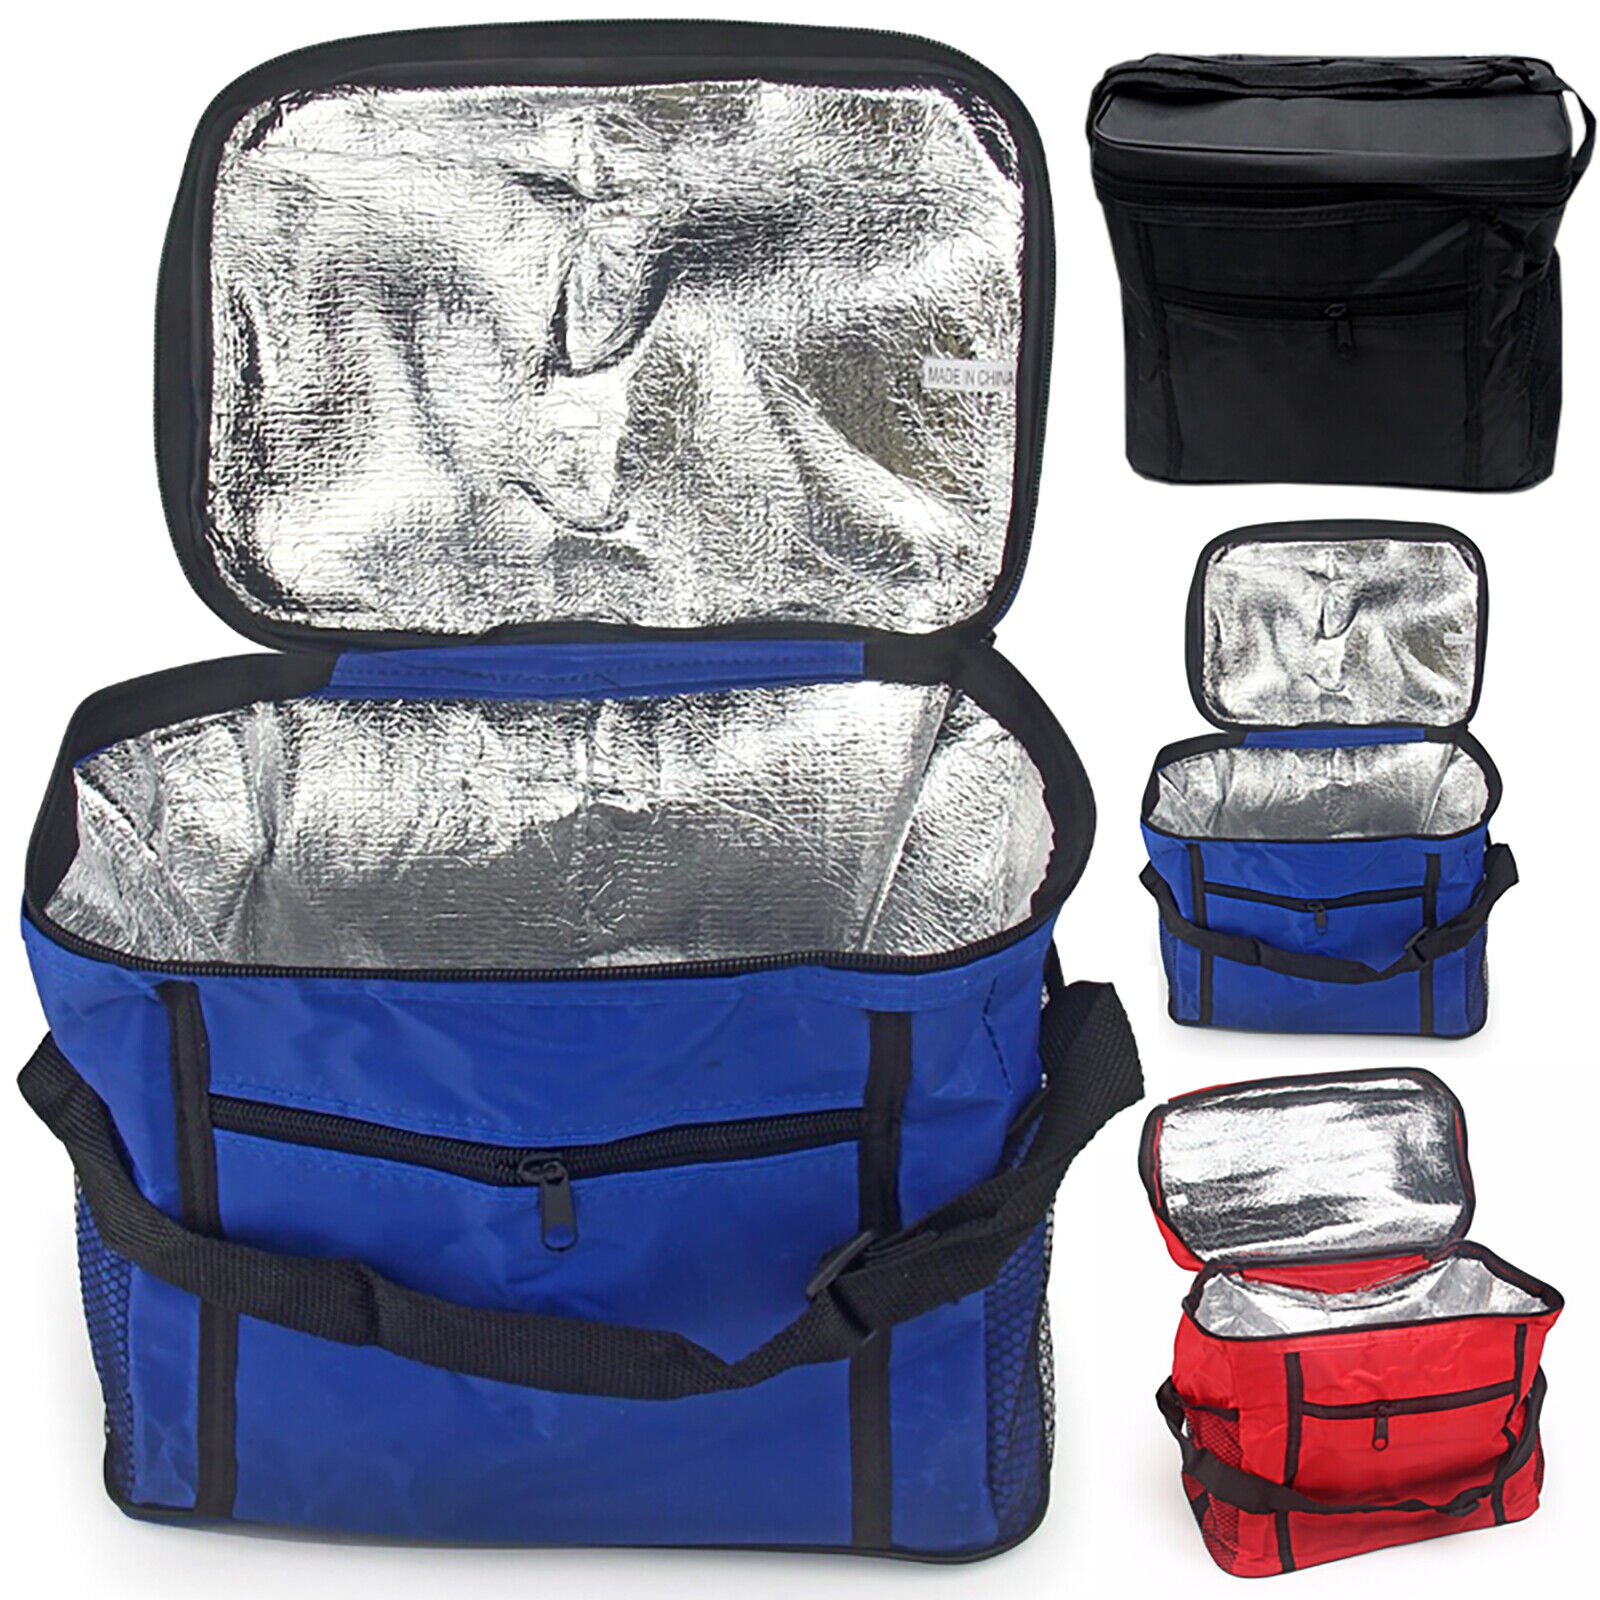 Large Lunch Bag Insulated Thermal Cooler Adult Kid Food Drink Storage Lunch Box